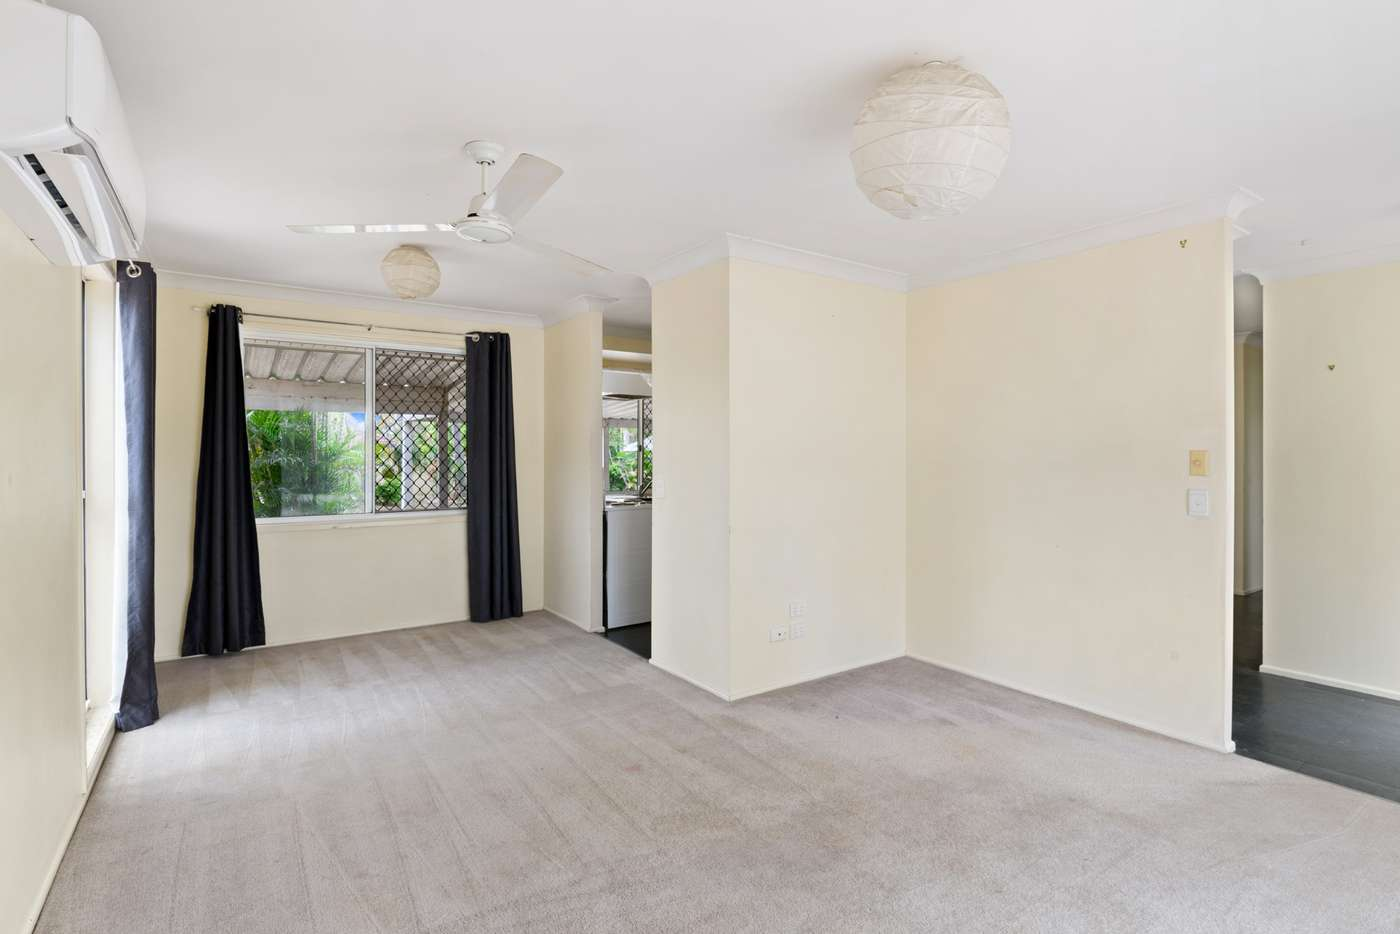 Fifth view of Homely house listing, 45 Federation Drive, Bethania QLD 4205